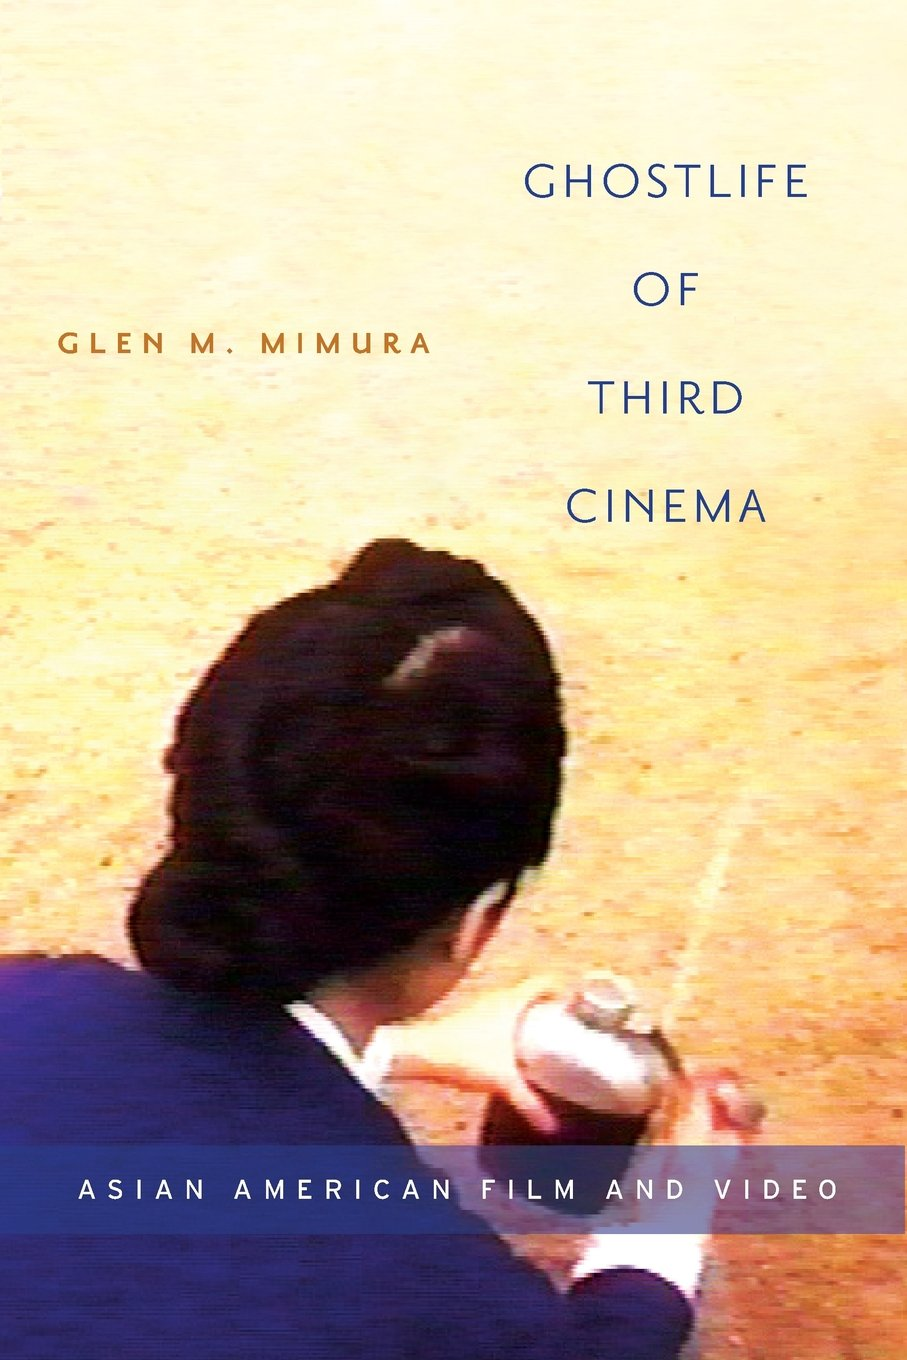 Ghostlife of Third Cinema : Asian American Film and Video